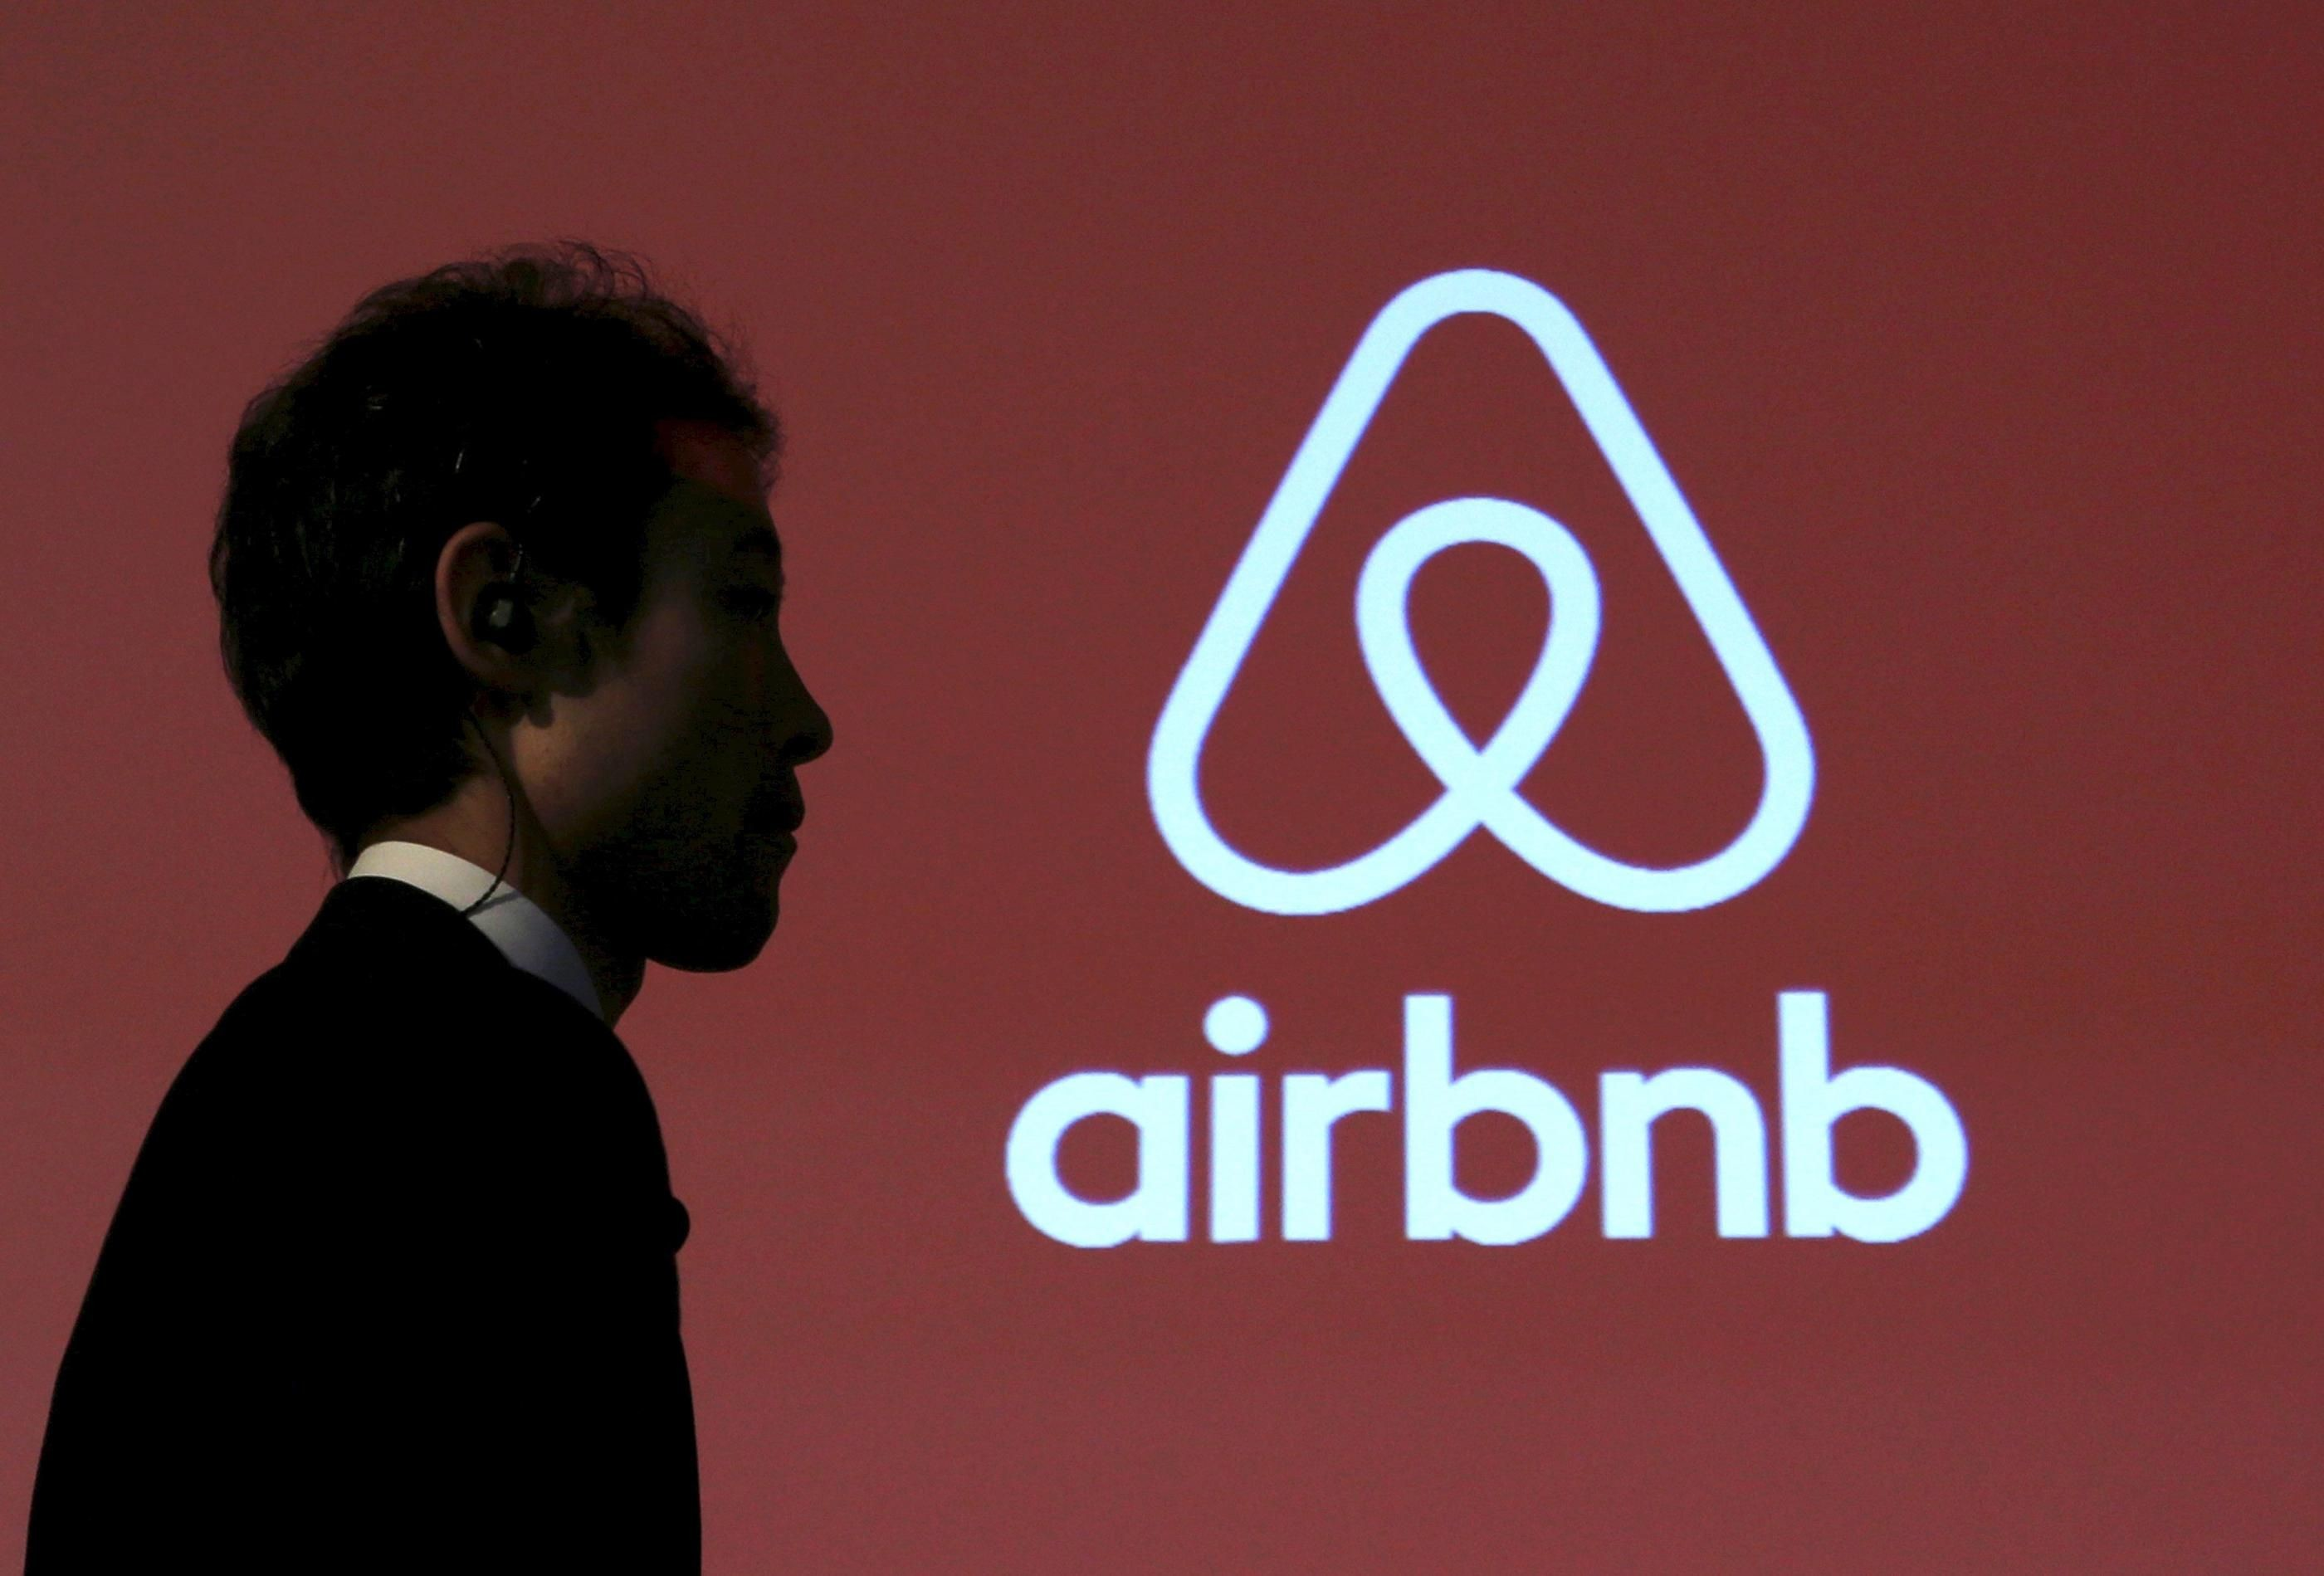 Stricter regulations on Airbnb in Japan before the 2020 Tokyo Olympics will cost visitors more